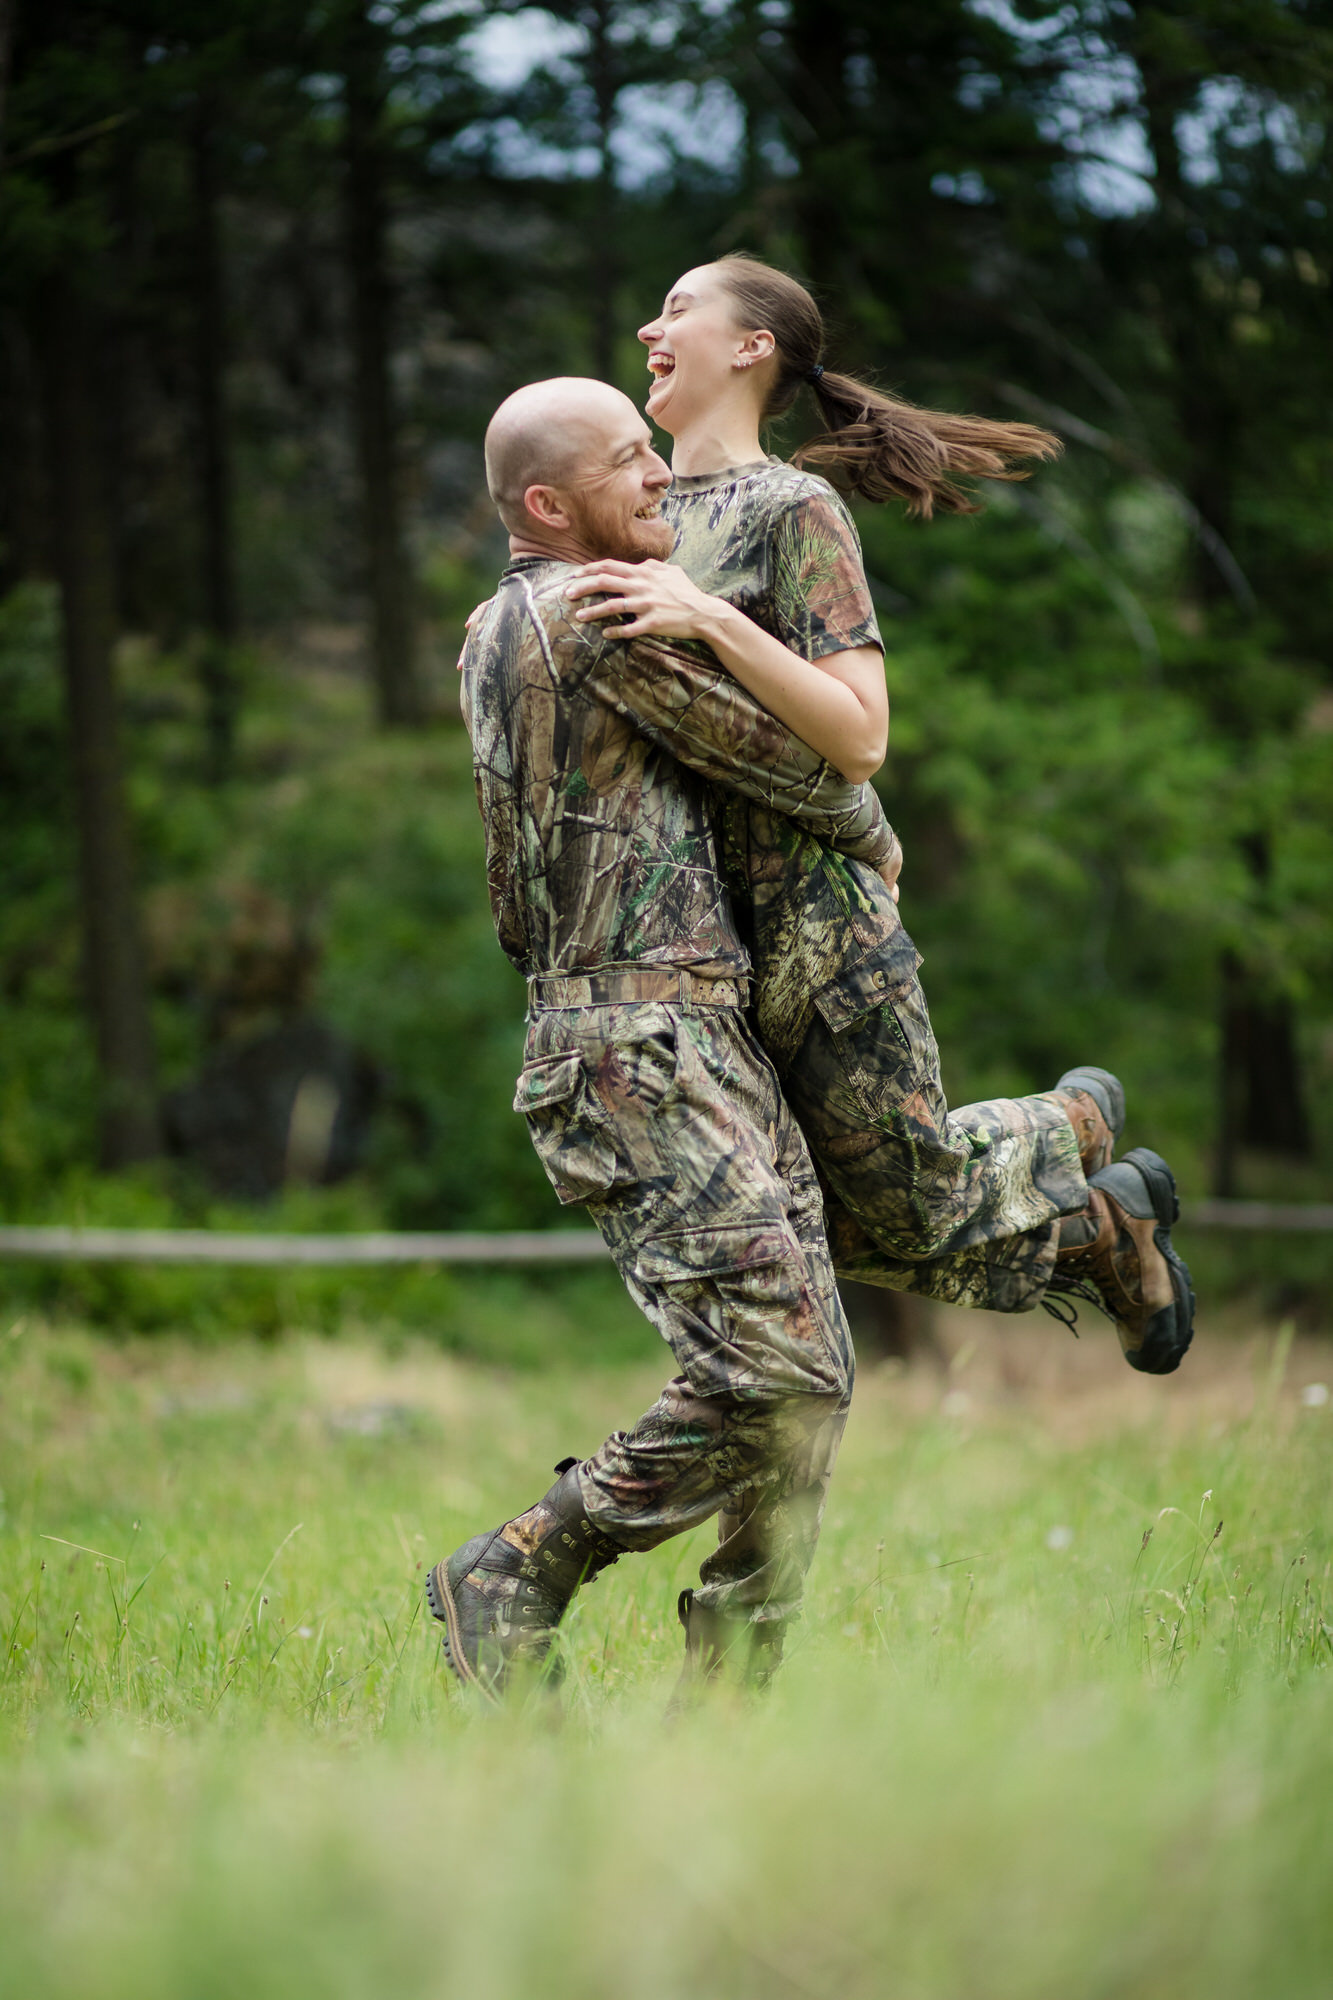 Engagement photos in the country with camp